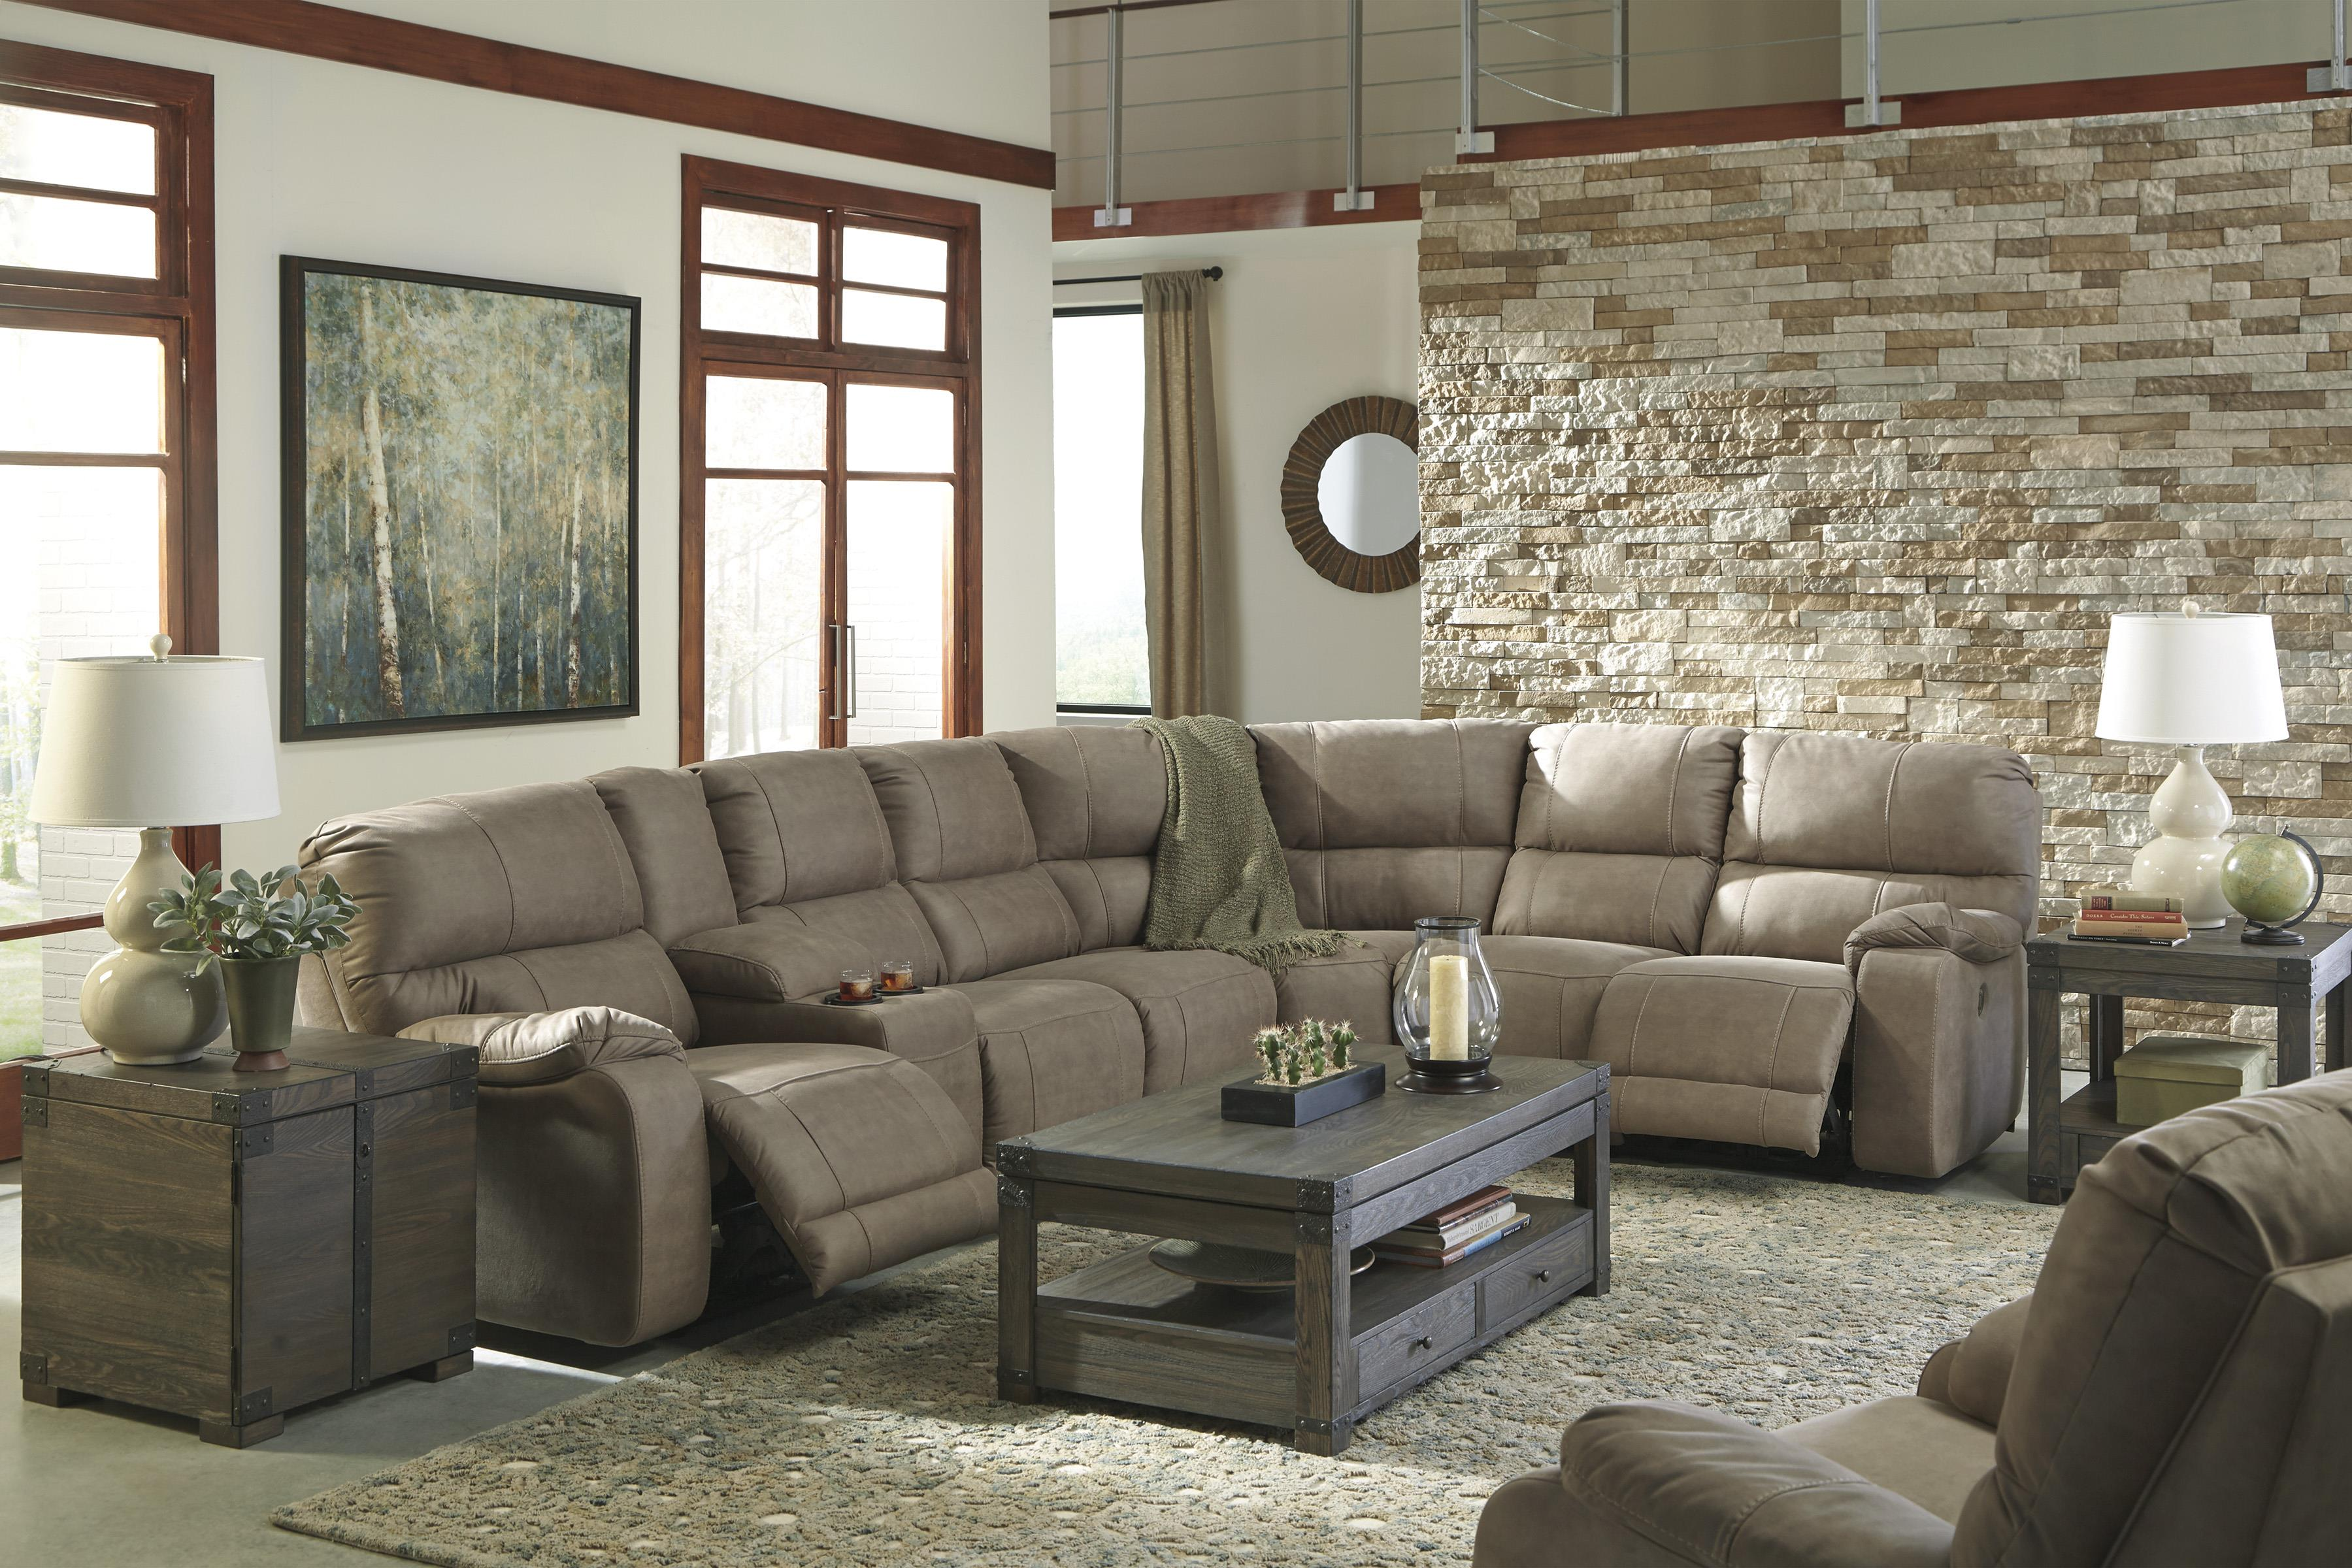 Benchcraft Bohannon Reclining Living Room Group - Item Number: 57403 Living Room Group 3